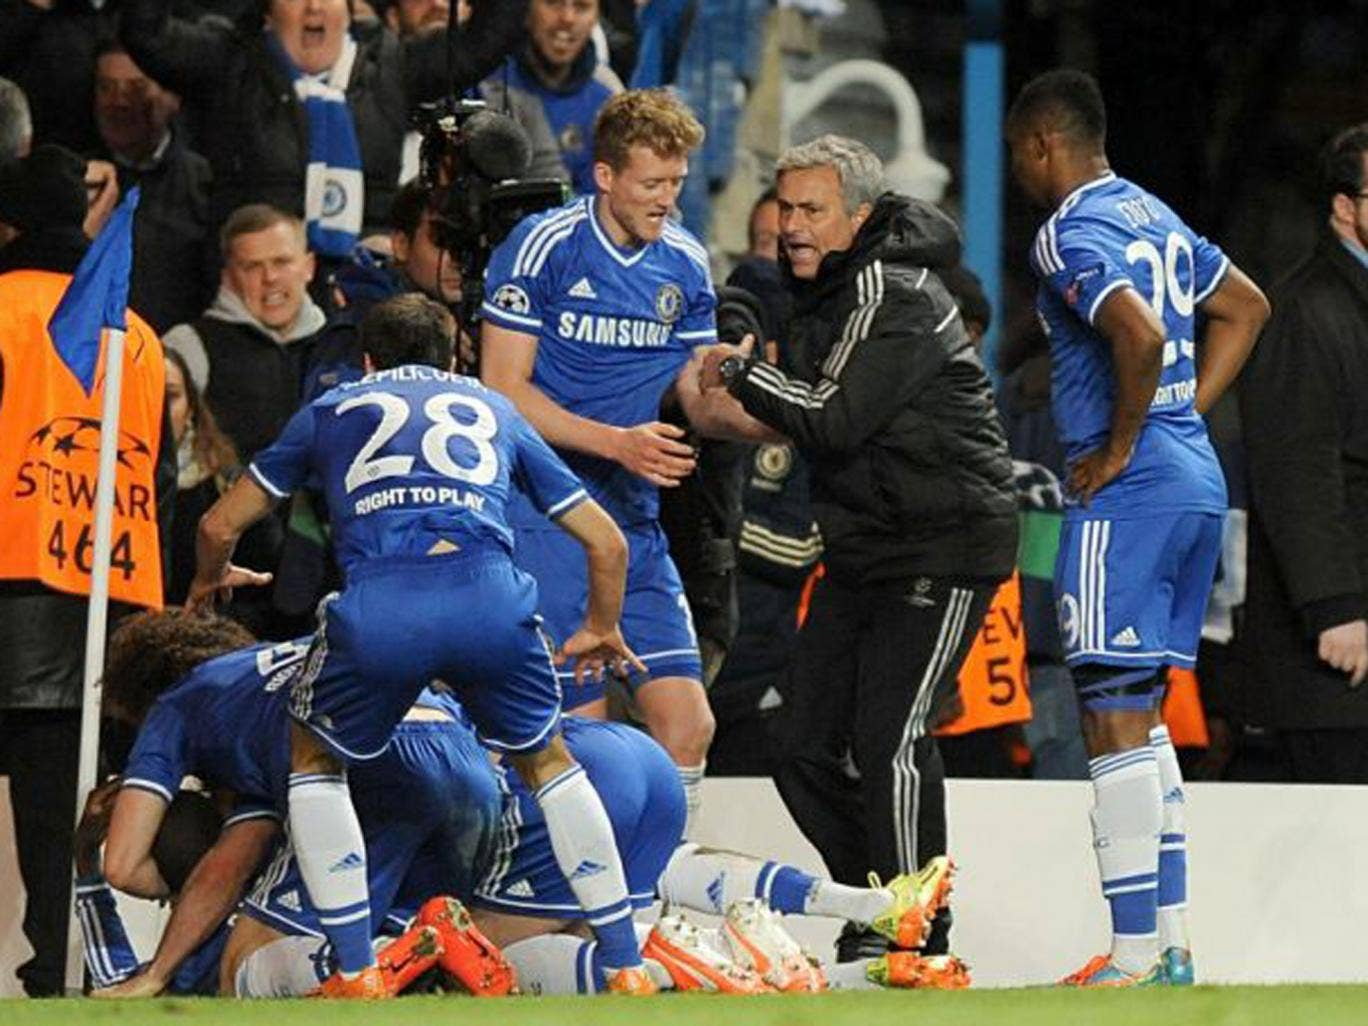 Jose Mourinho (second from right) celebrates with his players after Demba Ba (bottom left) scored the crucial second goal in the 2-0 win over PSG